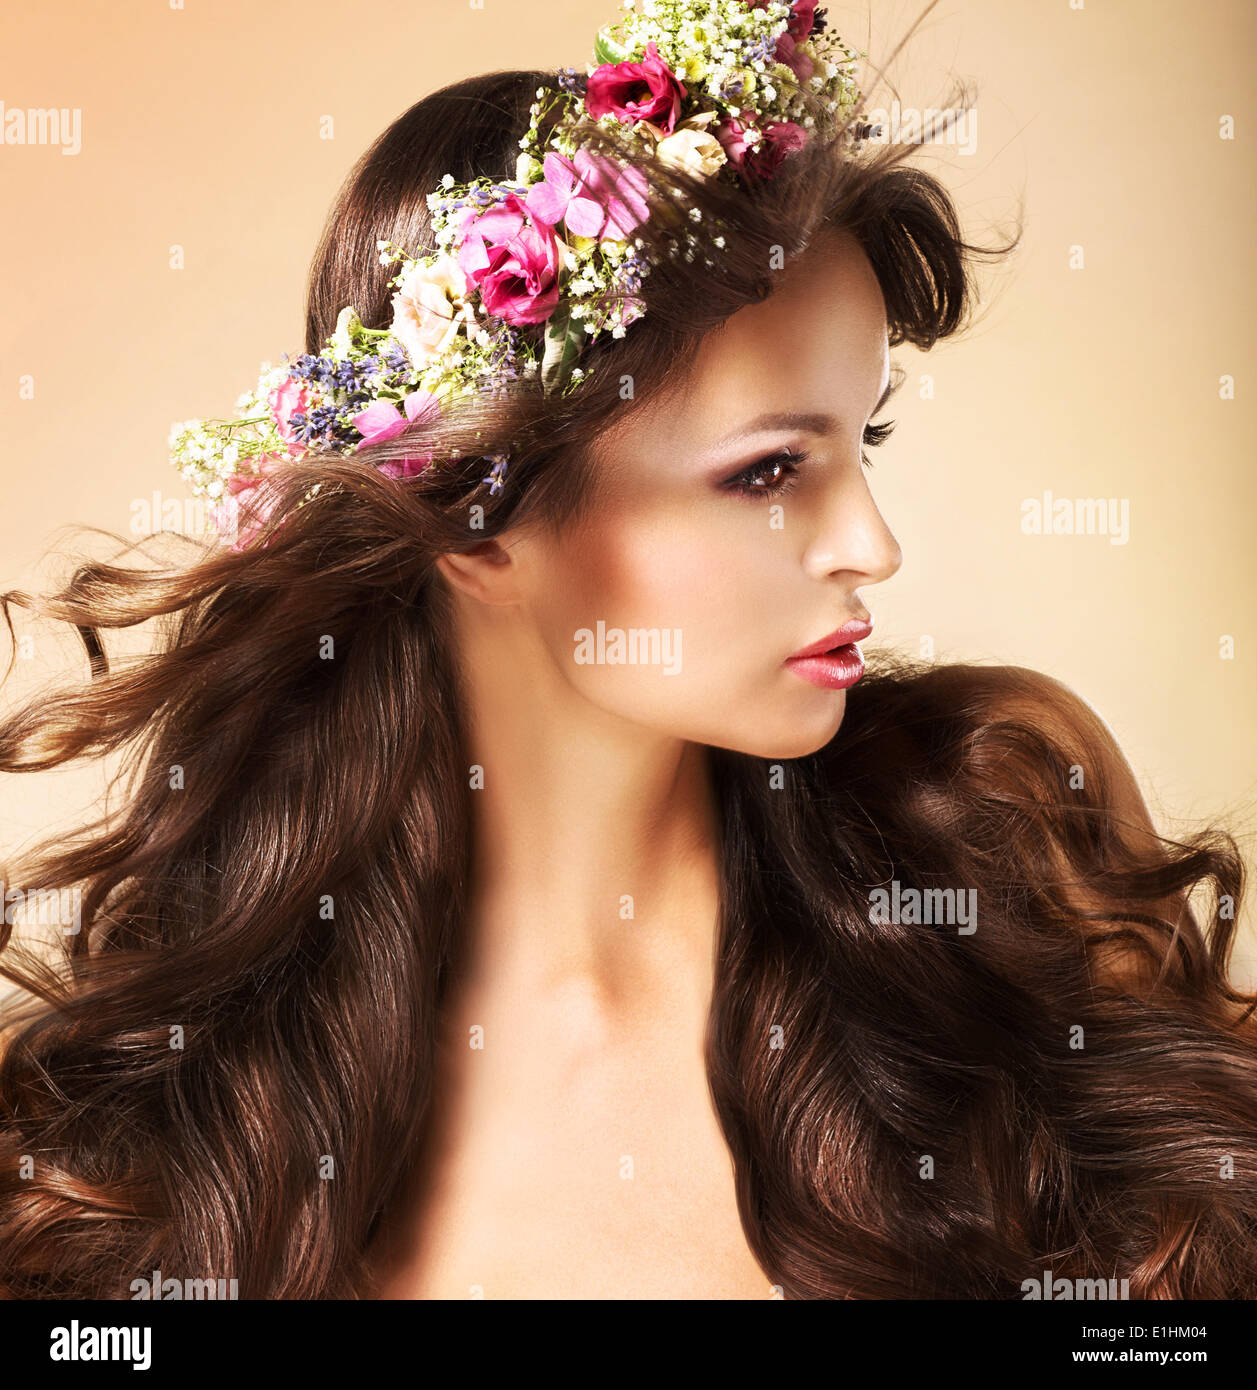 Portrait of Young Auburn Woman with Long Flowing Hairs and Wildflowers - Stock Image